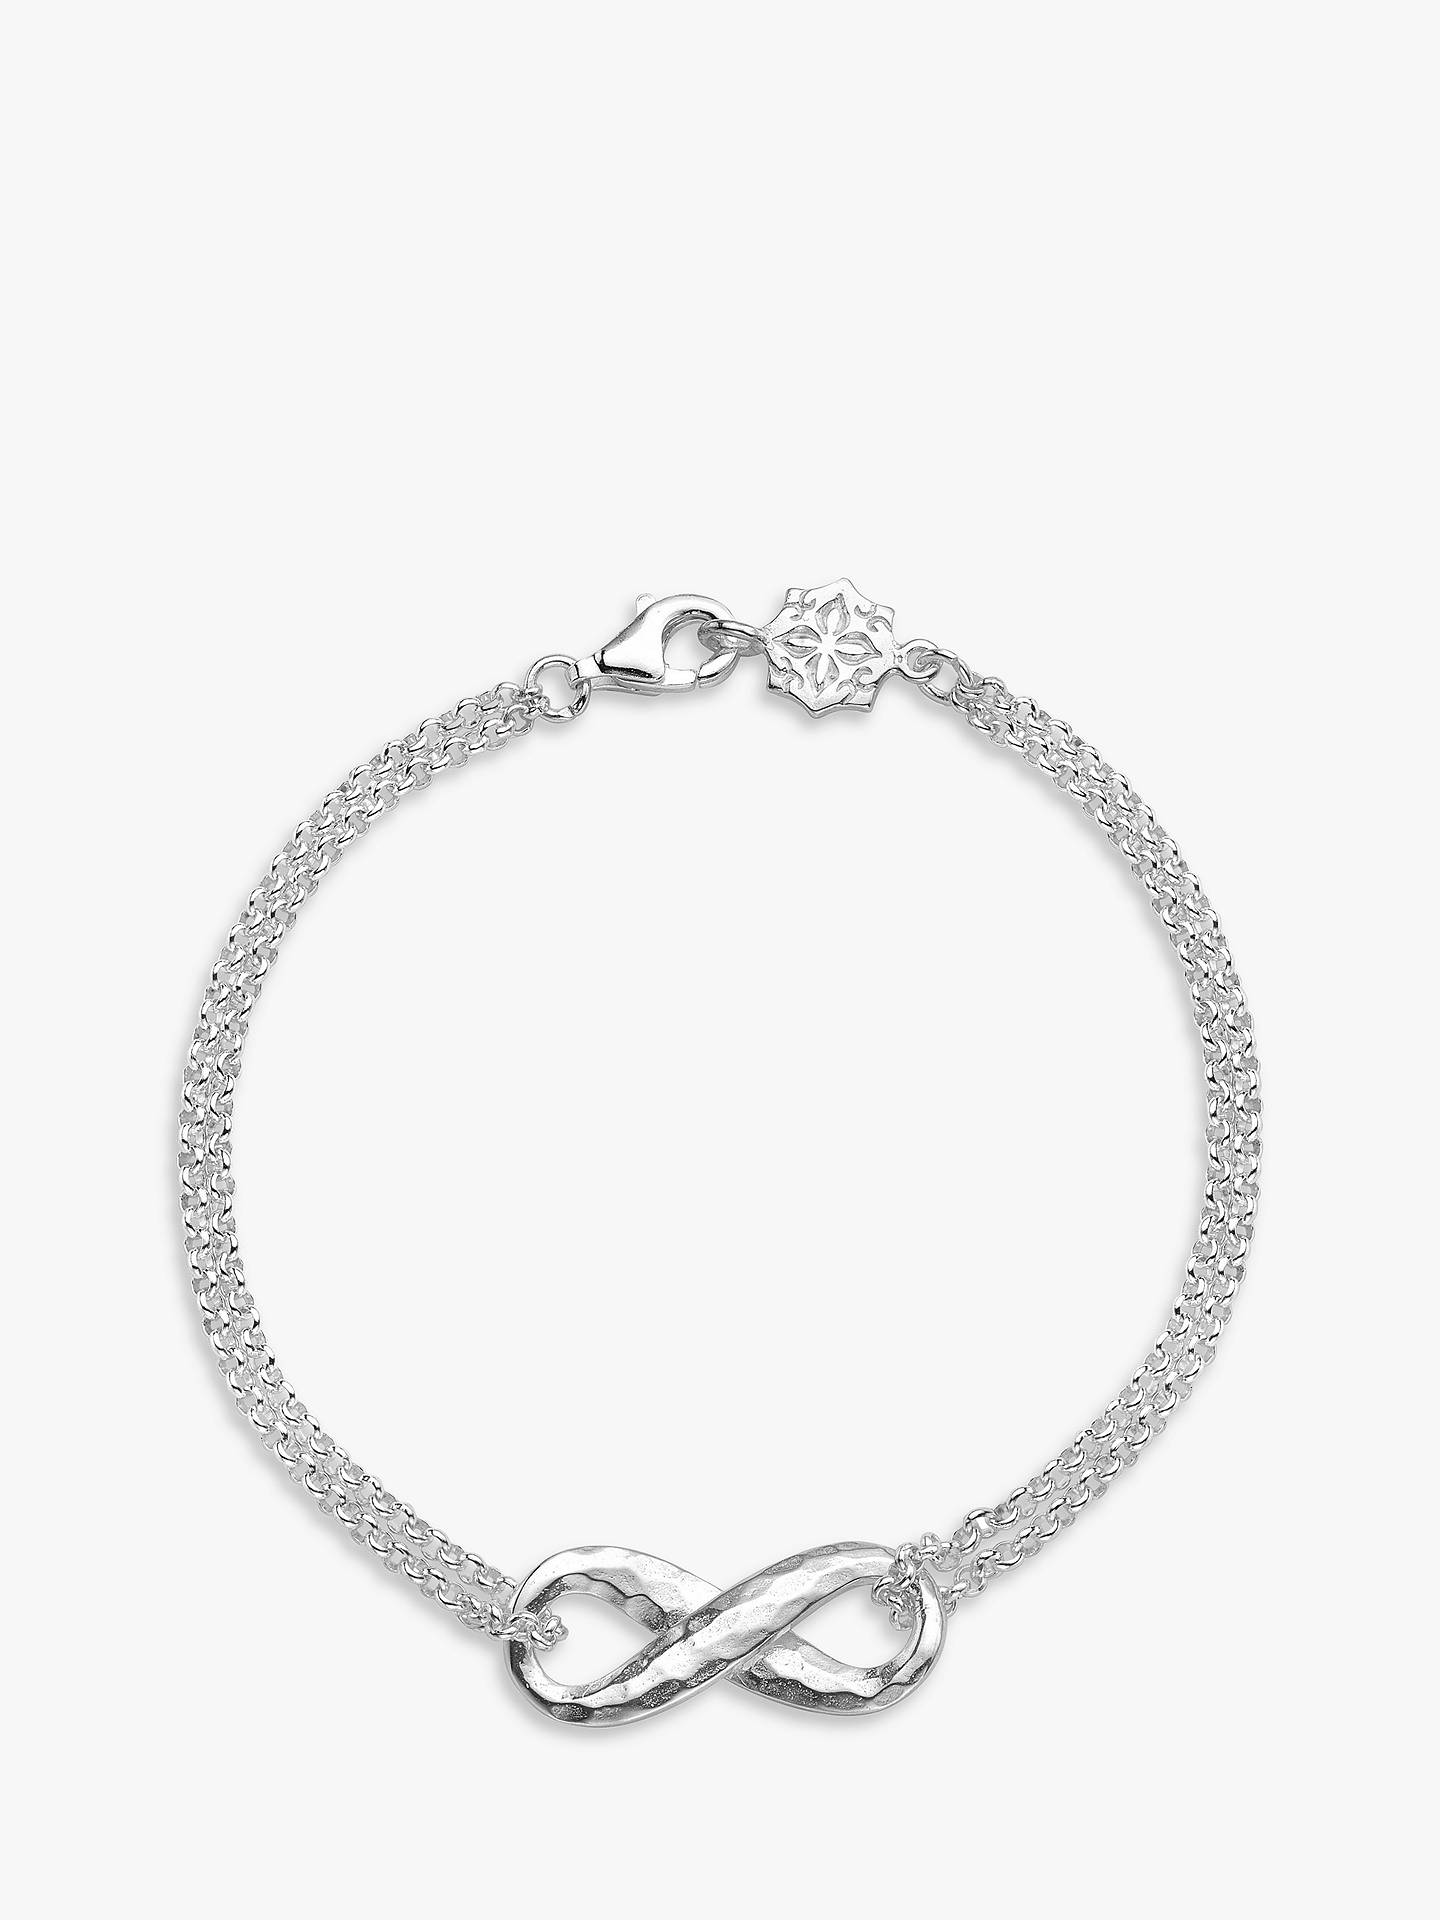 b878e43458899 Dower & Hall Sterling Silver Entwined Infinity Bracelet, Silver